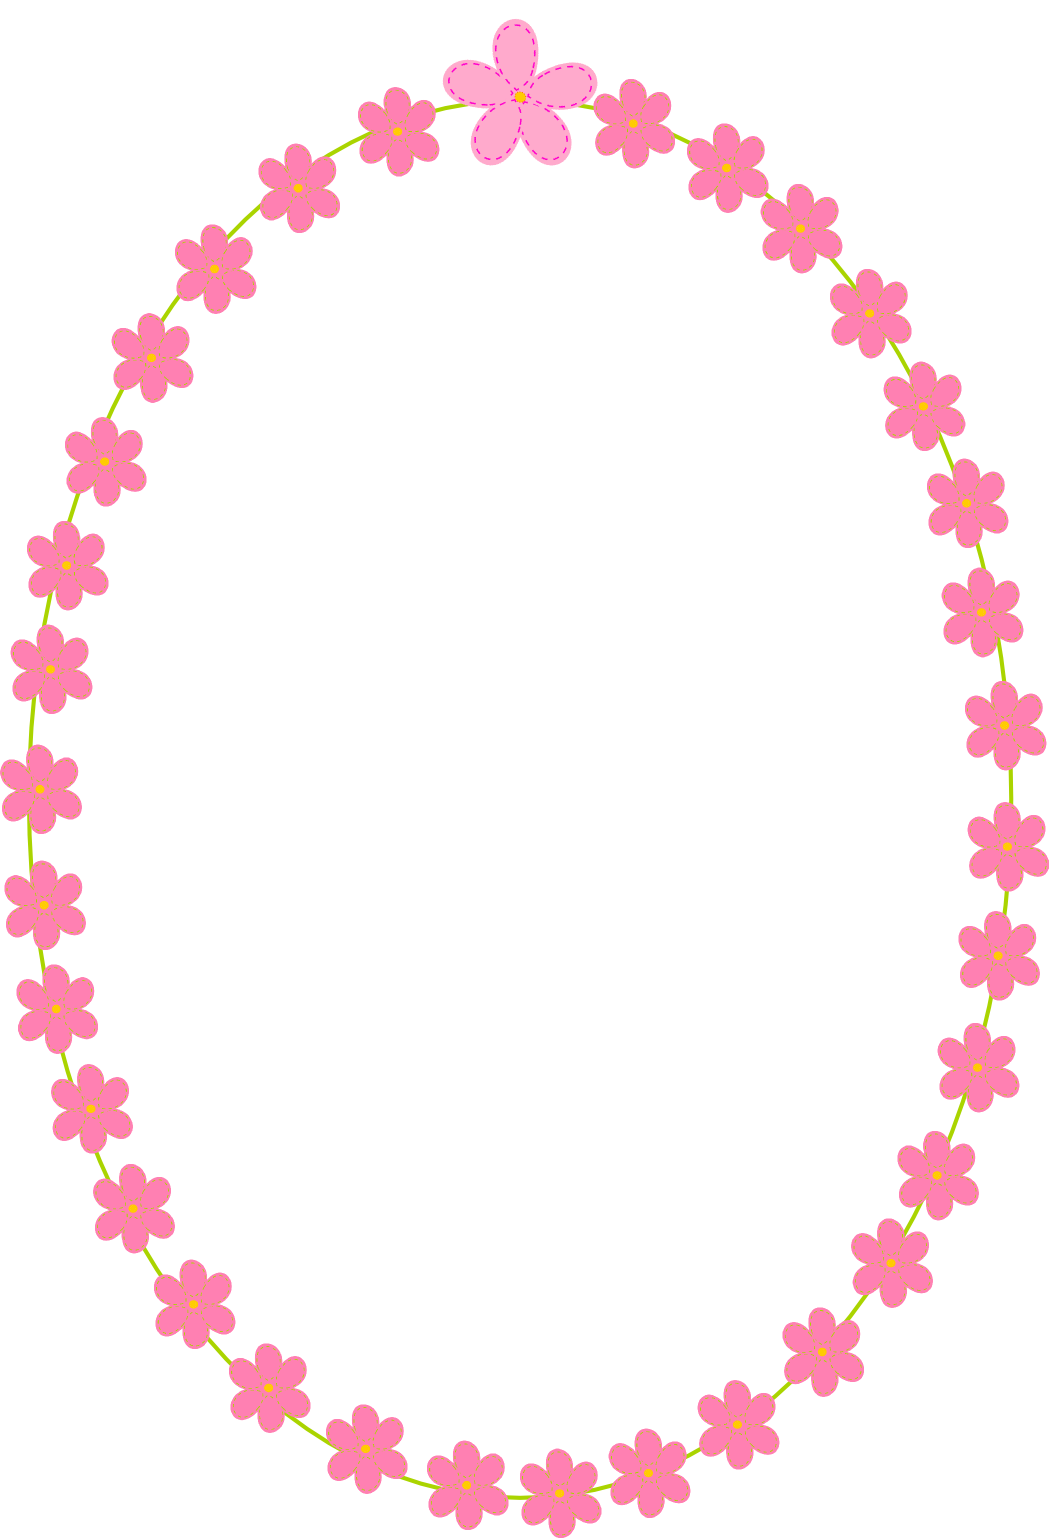 Scrapbook paper and stickers - Free Digital Flower Frames Scrapbooking Paper And Stickers Png